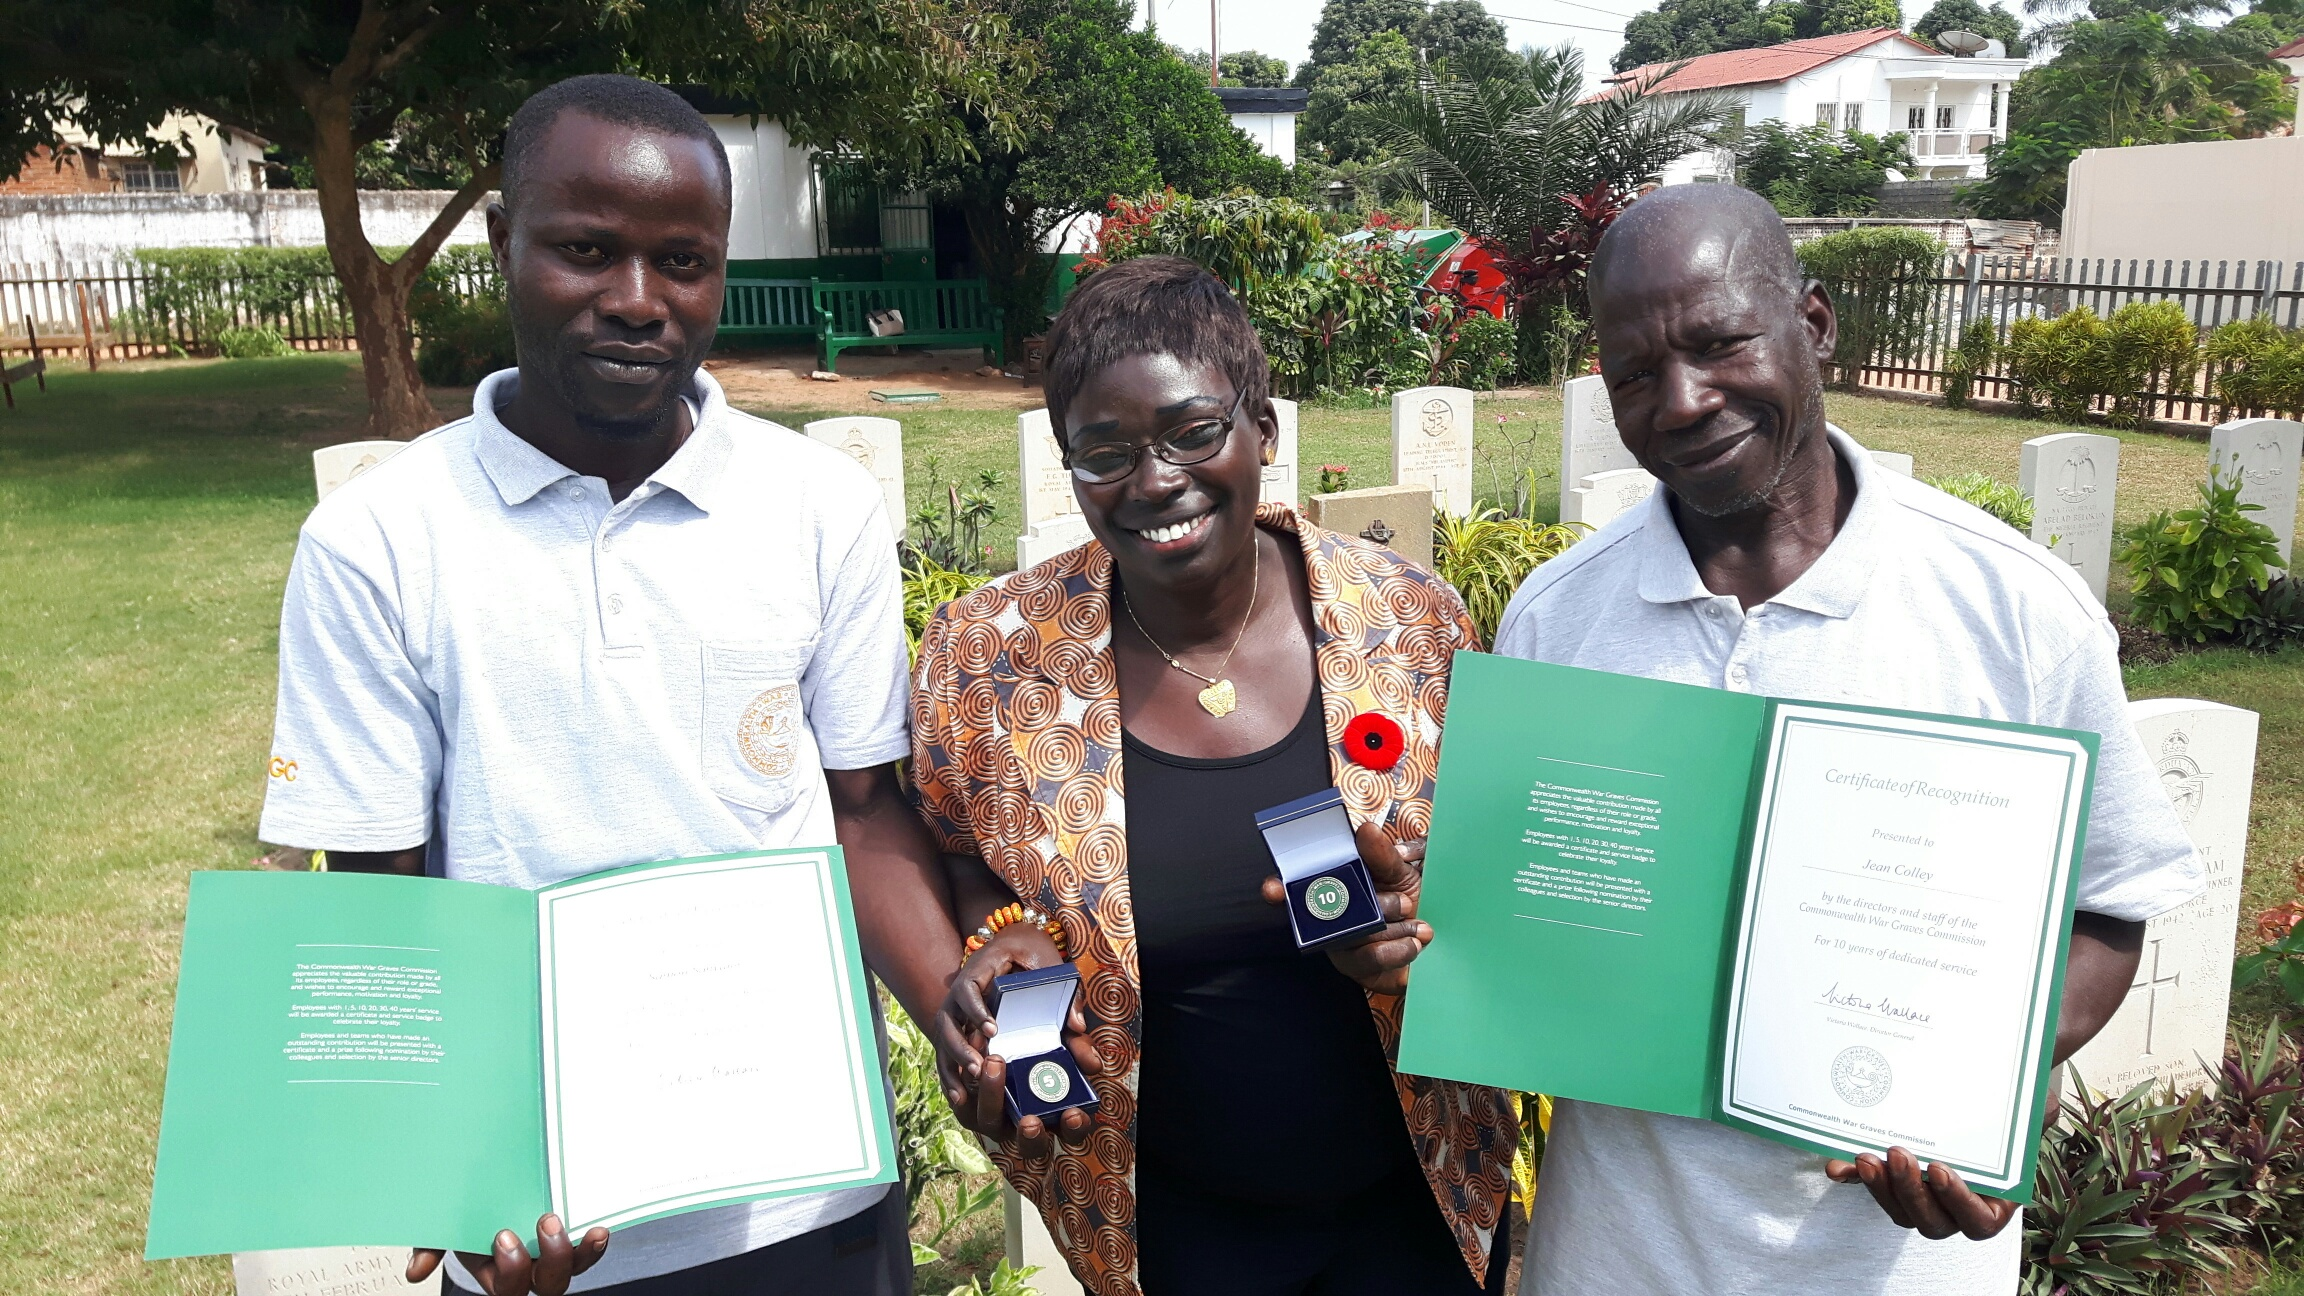 Jean Paul and Saihou receiving their awards in Gambia